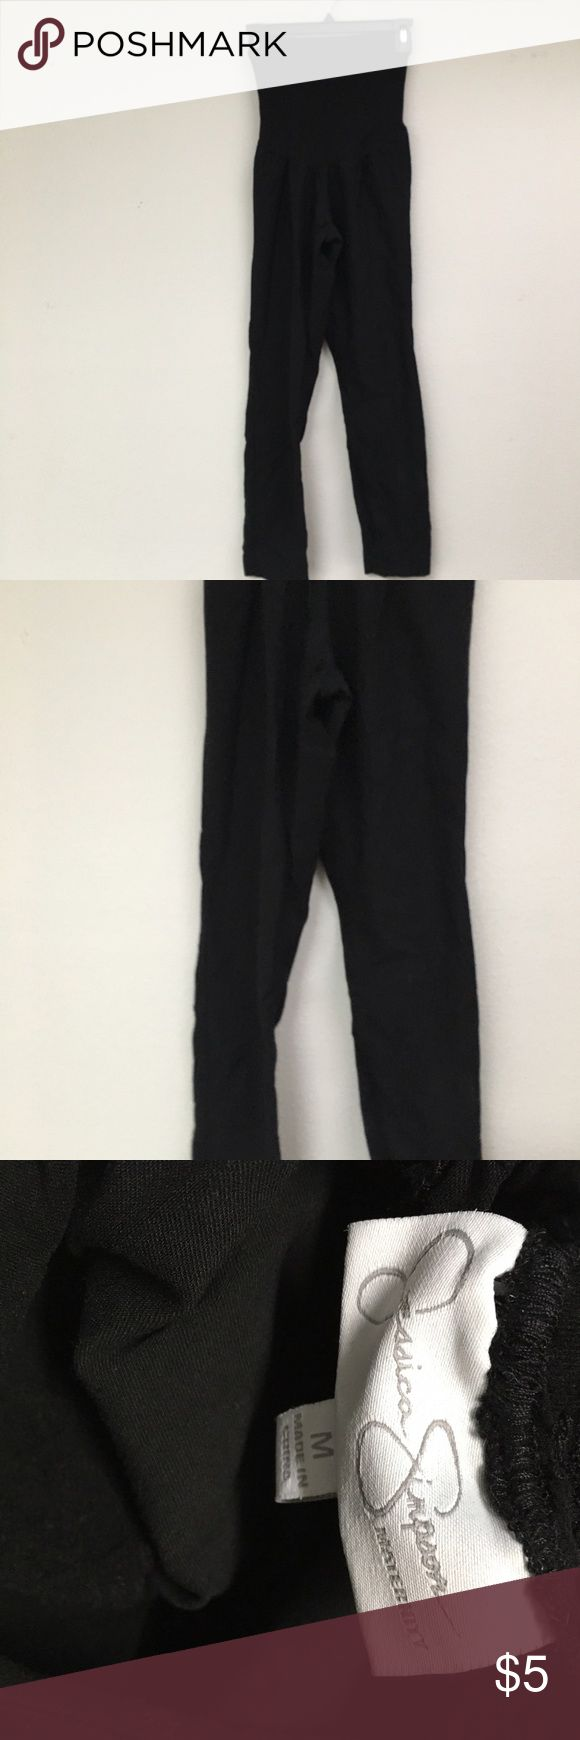 Jessica Simpson Maternity Pants This is a pair of good condition maternity pants from Jessica Simpson they are size medium.  Very stretchy do show few signs of wear but no whole or stains Jessica Simpson Pants Straight Leg